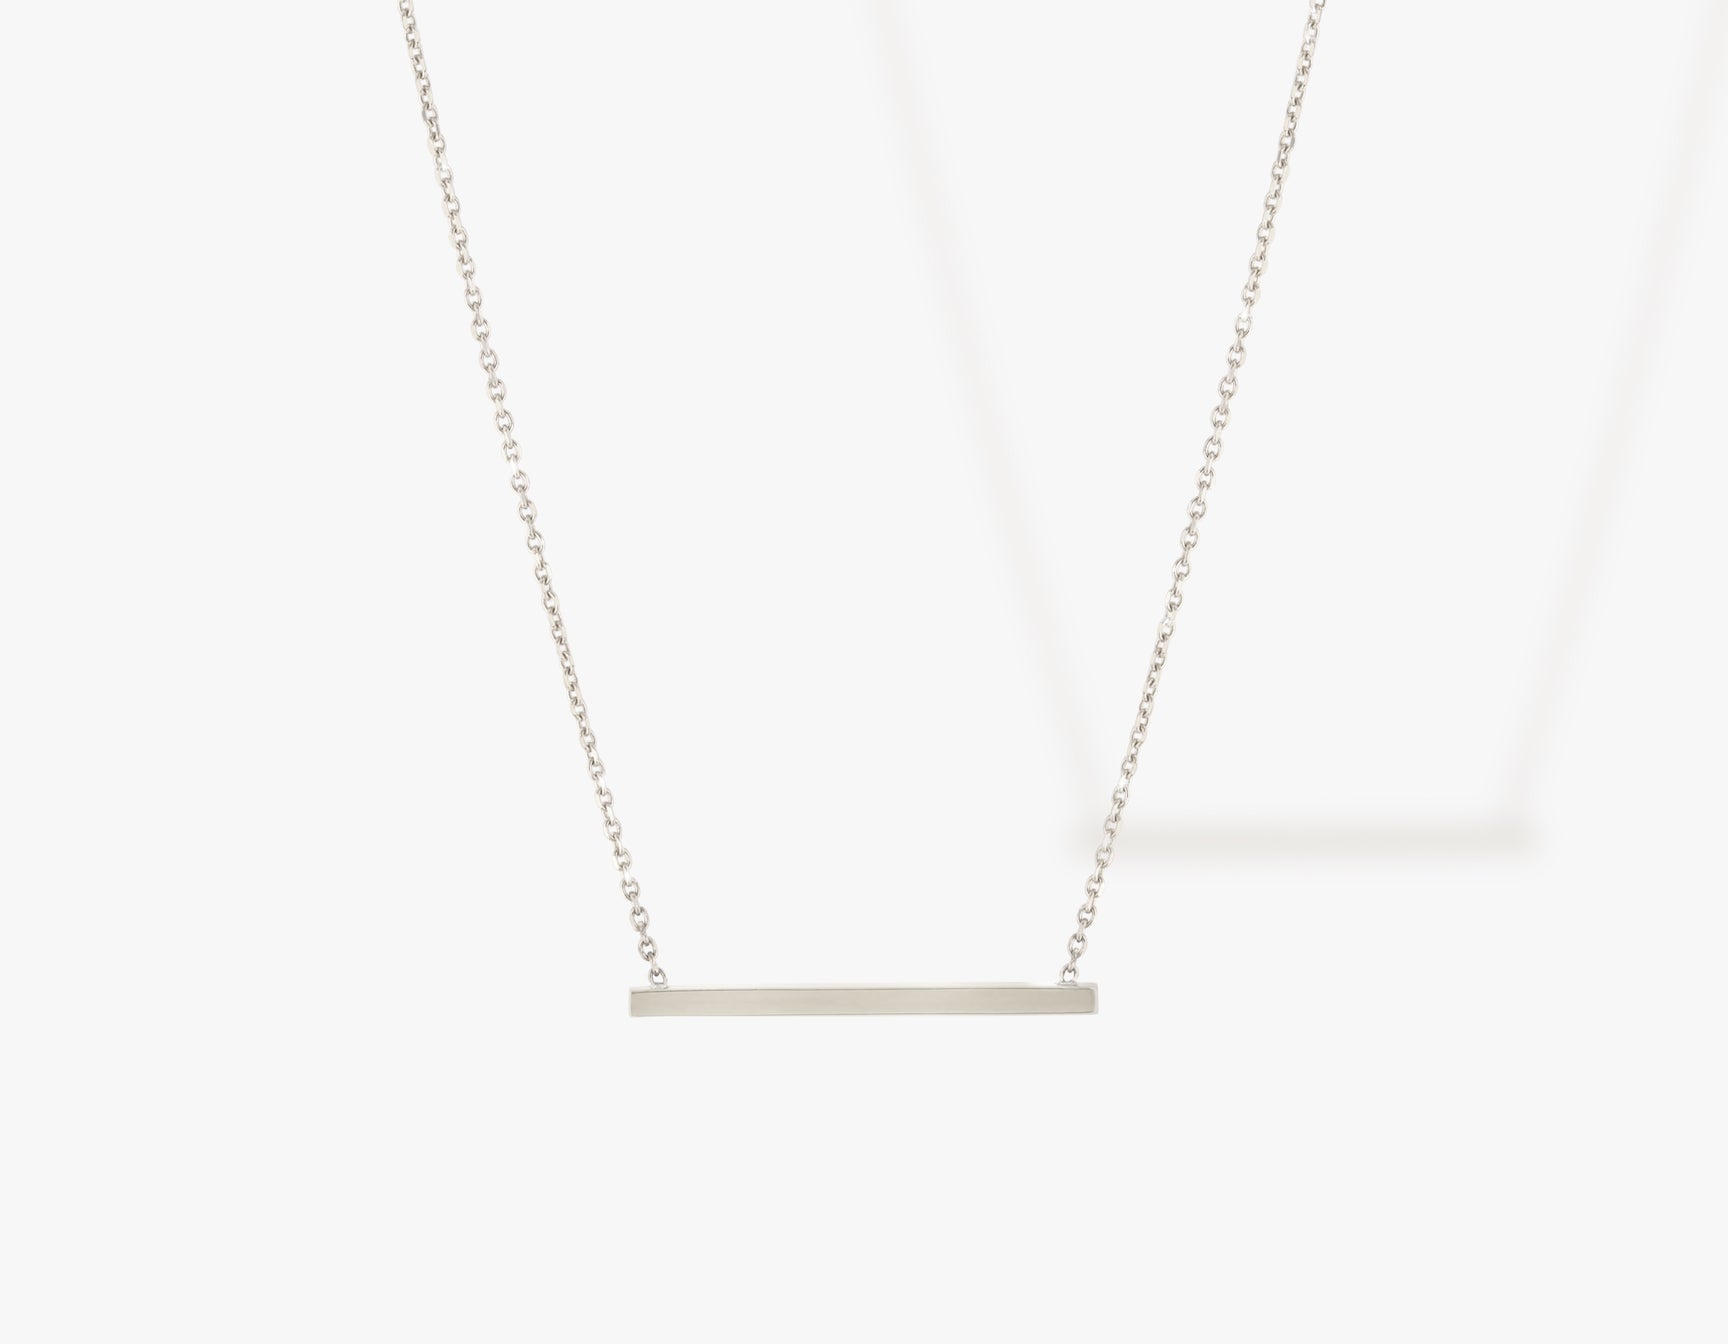 Vrai solid gold Line Necklace, 14K White Gold